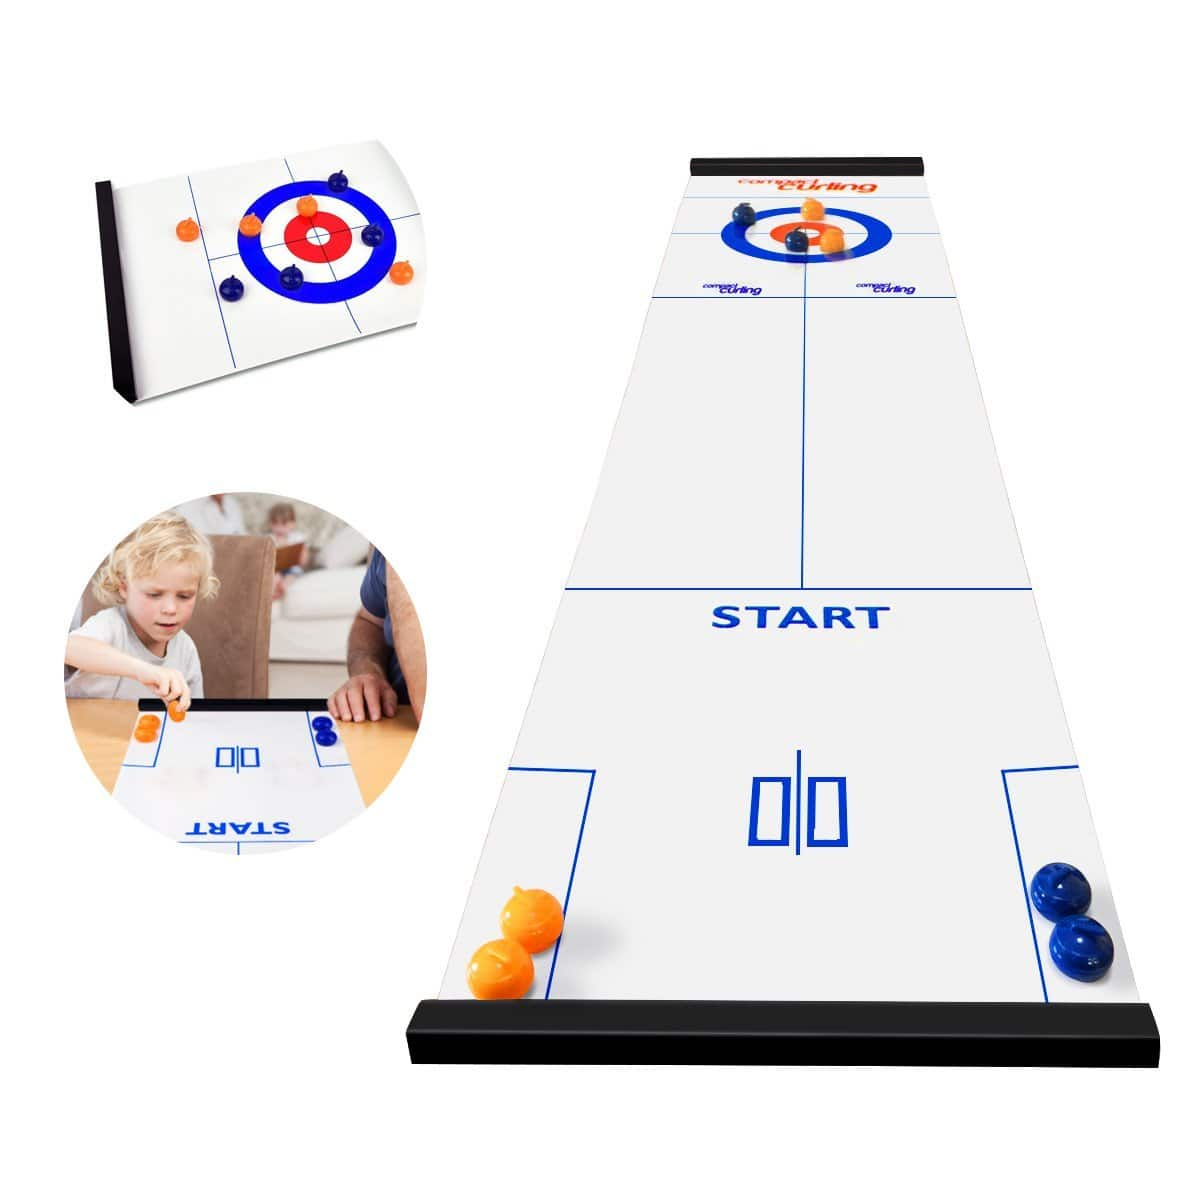 50% OFF - BicycleStore Table Top Curling Game for Family, Adults and Kids Team Board Game Training for Indoor or Travel Compact Storage - $8.99